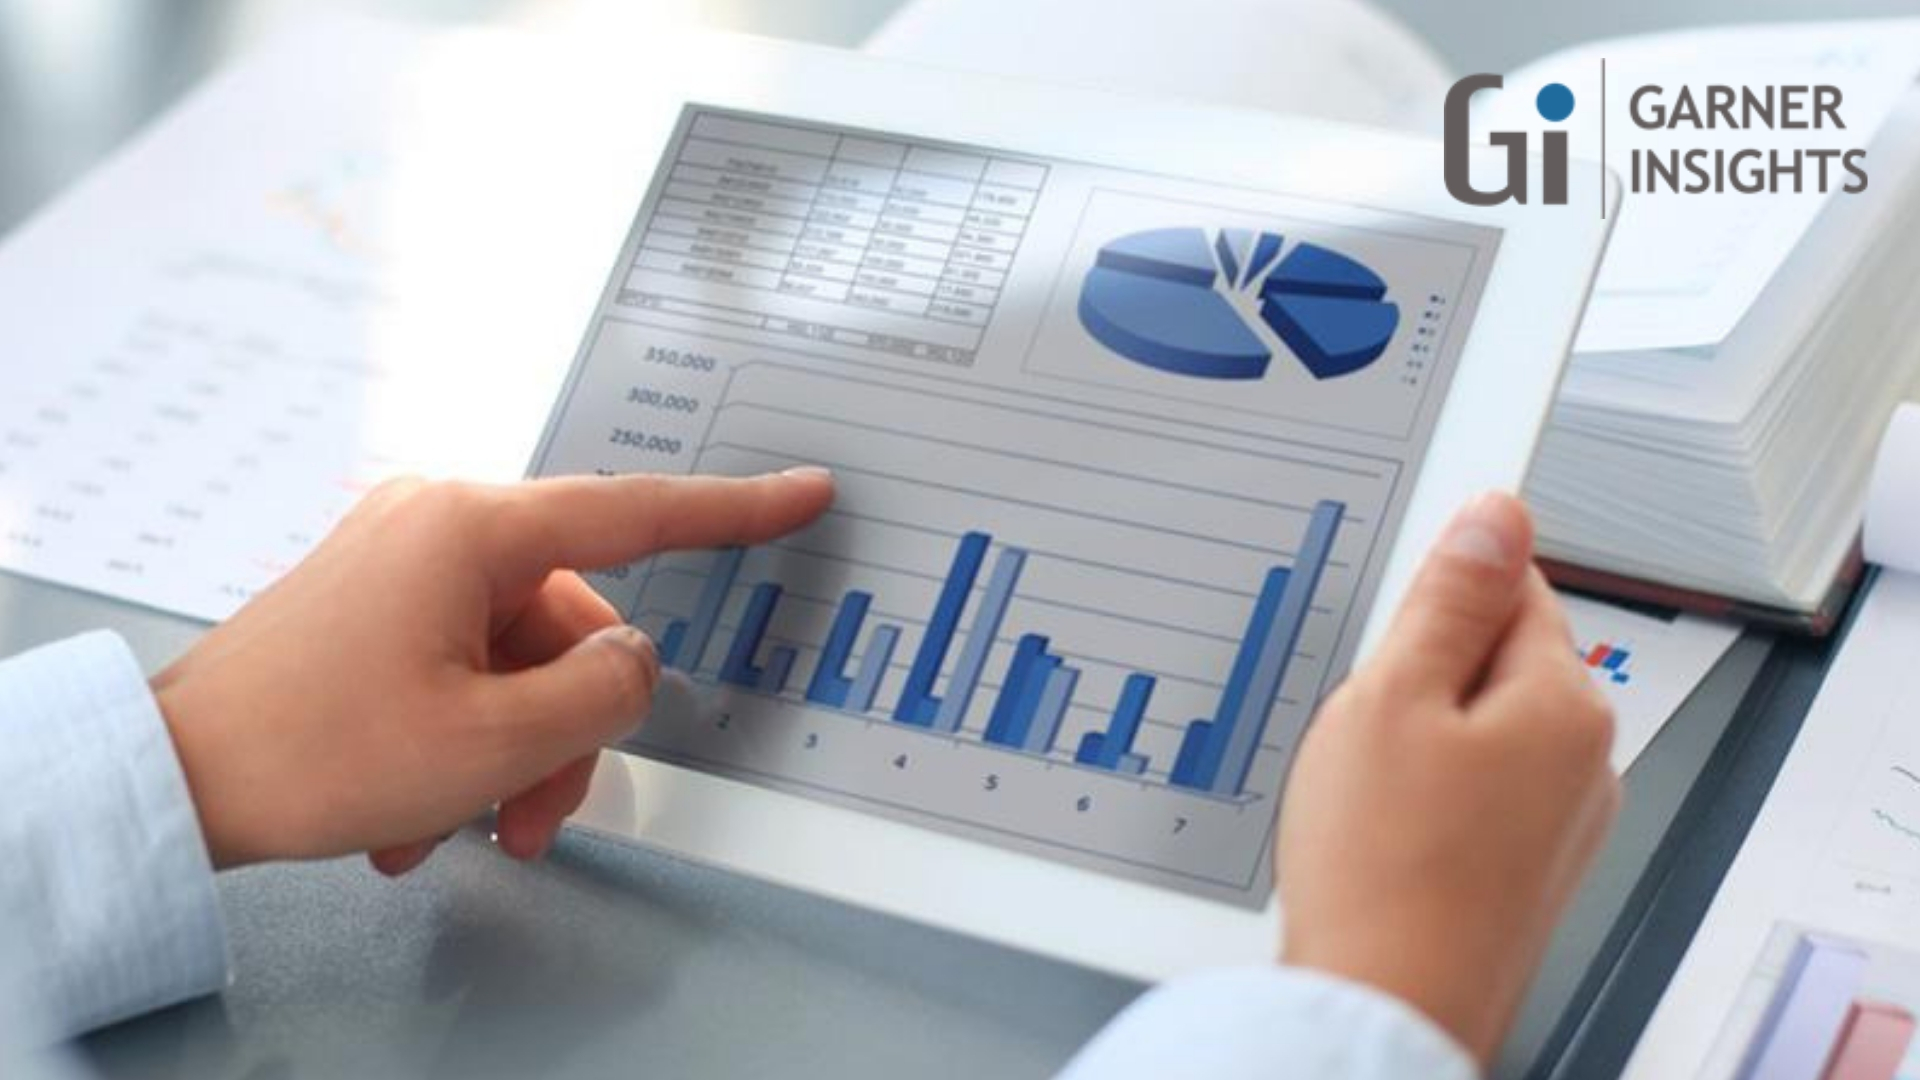 Covid-19 Impression On Flight Management Laptop Market 2020 Future Scope and Value Evaluation of High Producers Profiles BAE Methods, Thales, Rockwell Collins, Moog